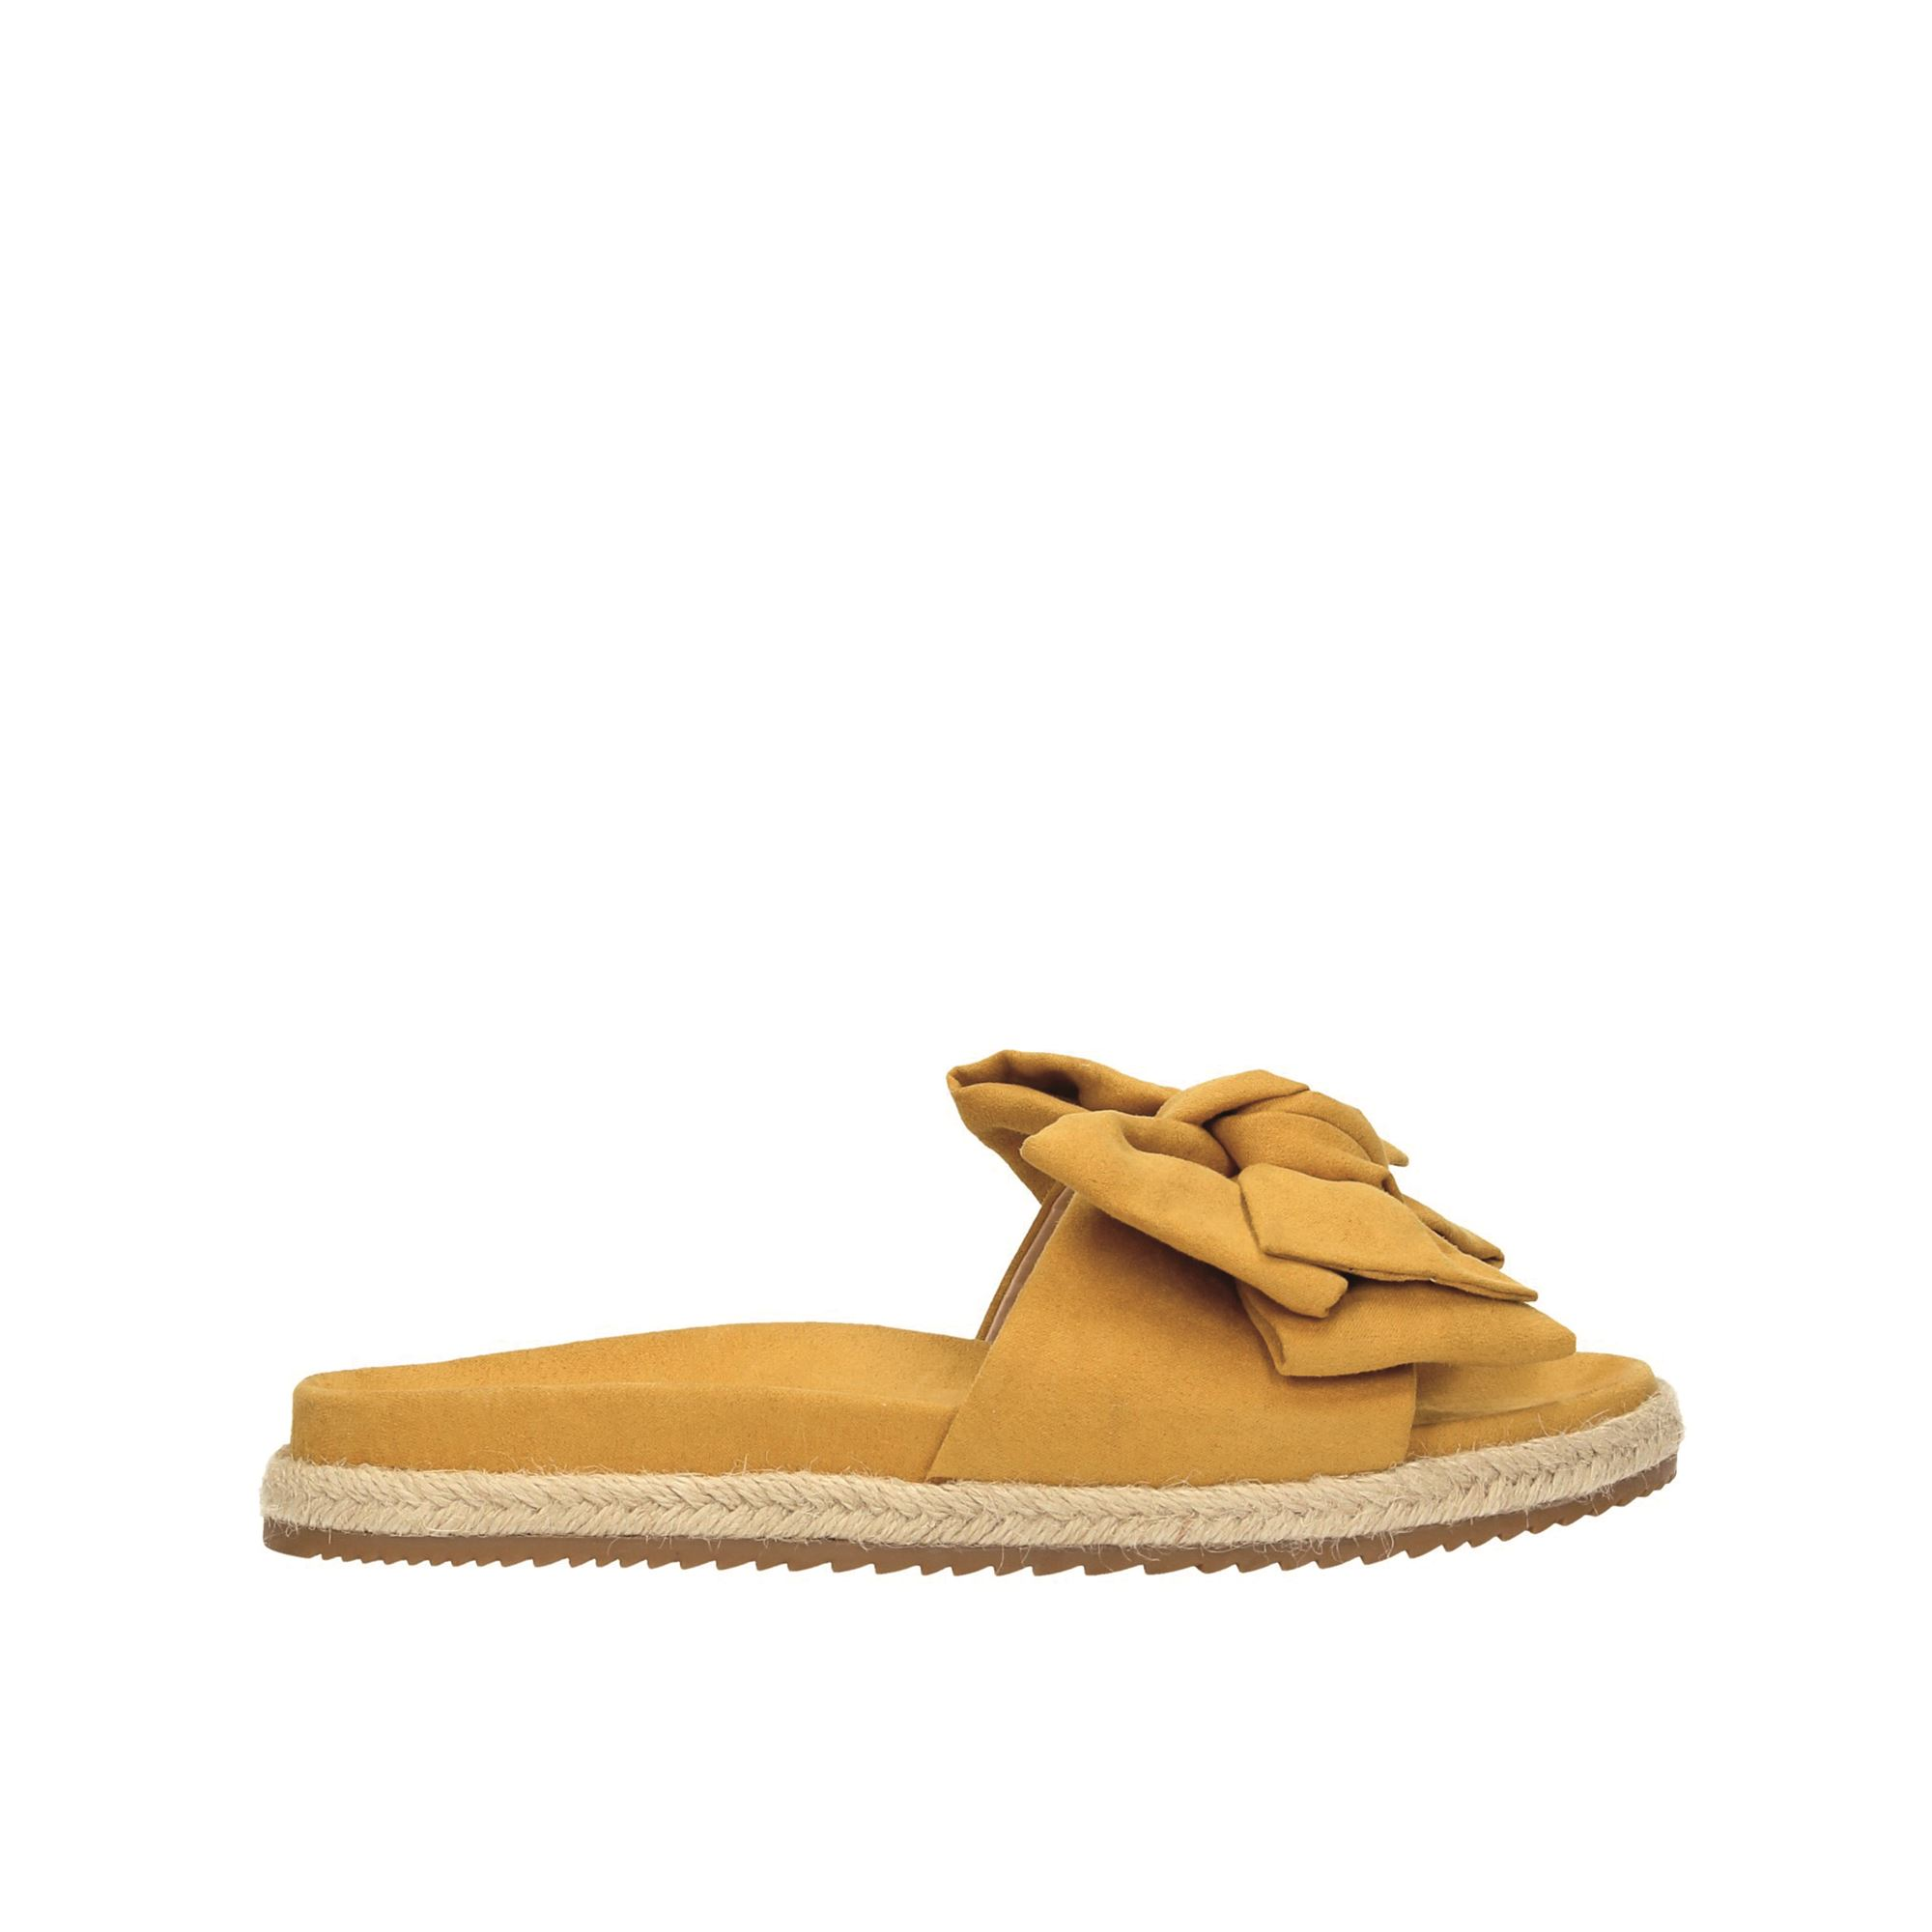 Tata Italia Shoes Woman Sandali Yellow 314-60B